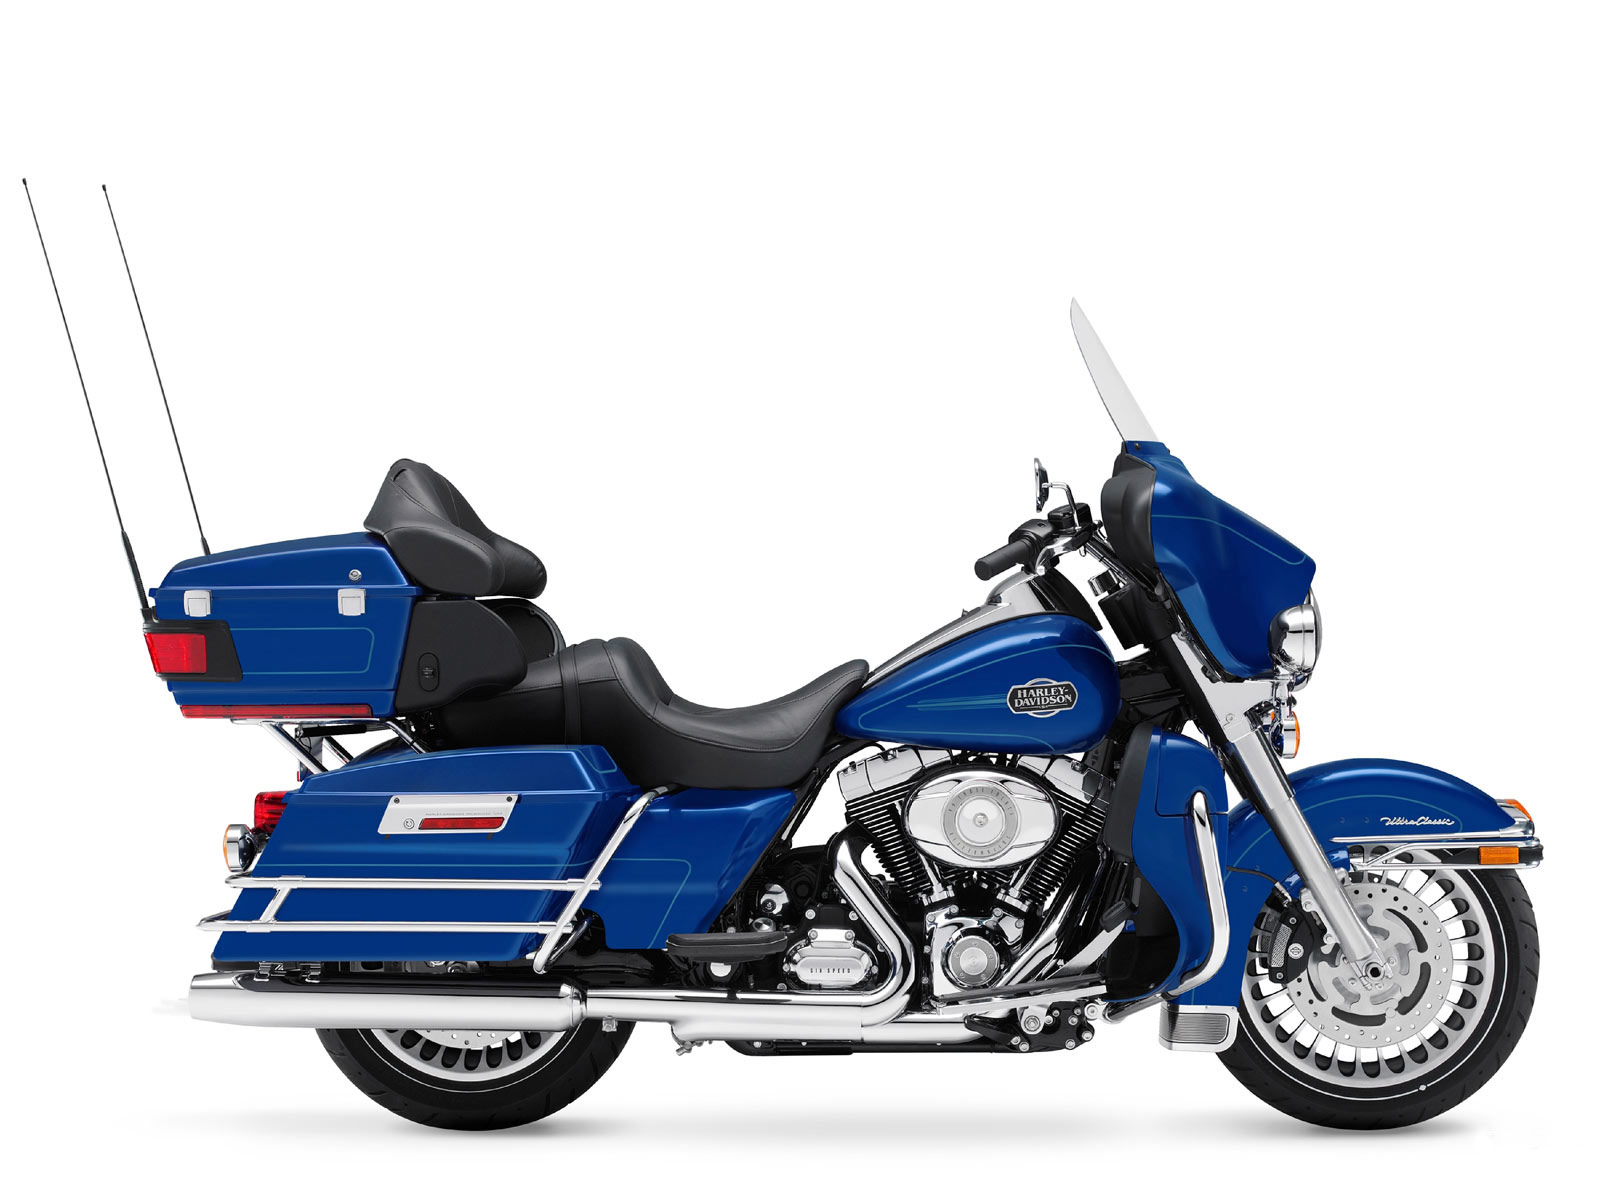 2009 electra glide classic review